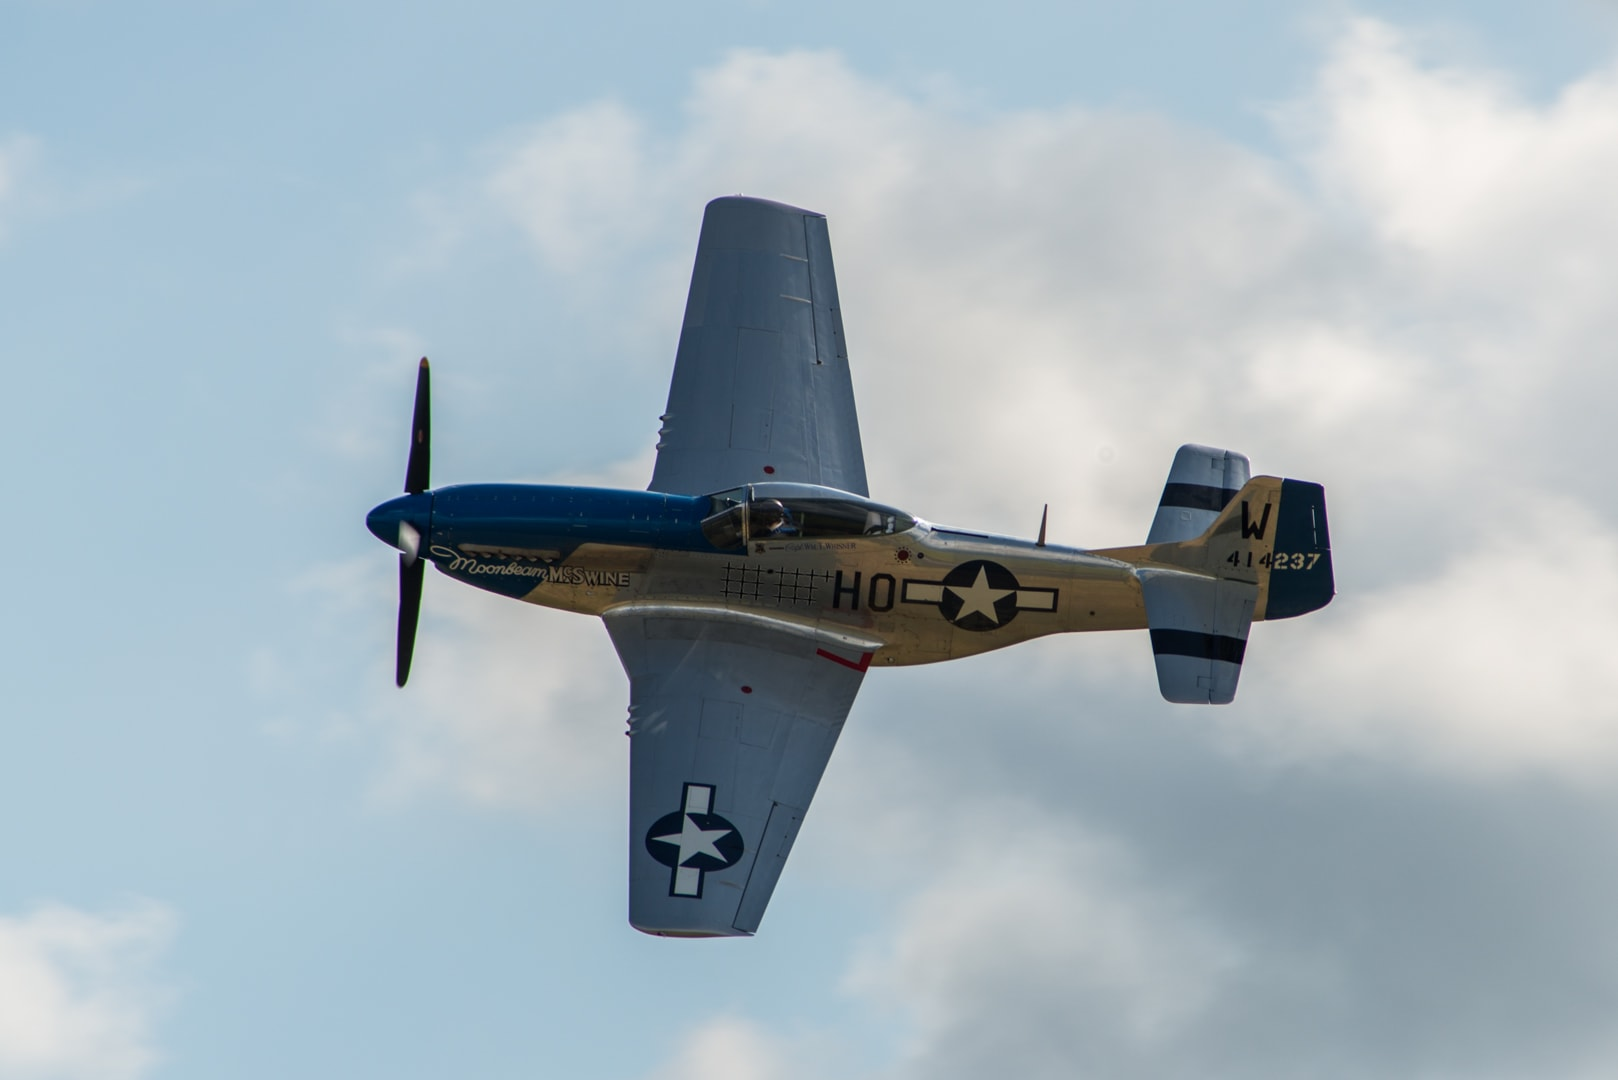 Photo d'avion du p51 mustang lors du meeting aérien sur Toulouse ( Lherm) 1